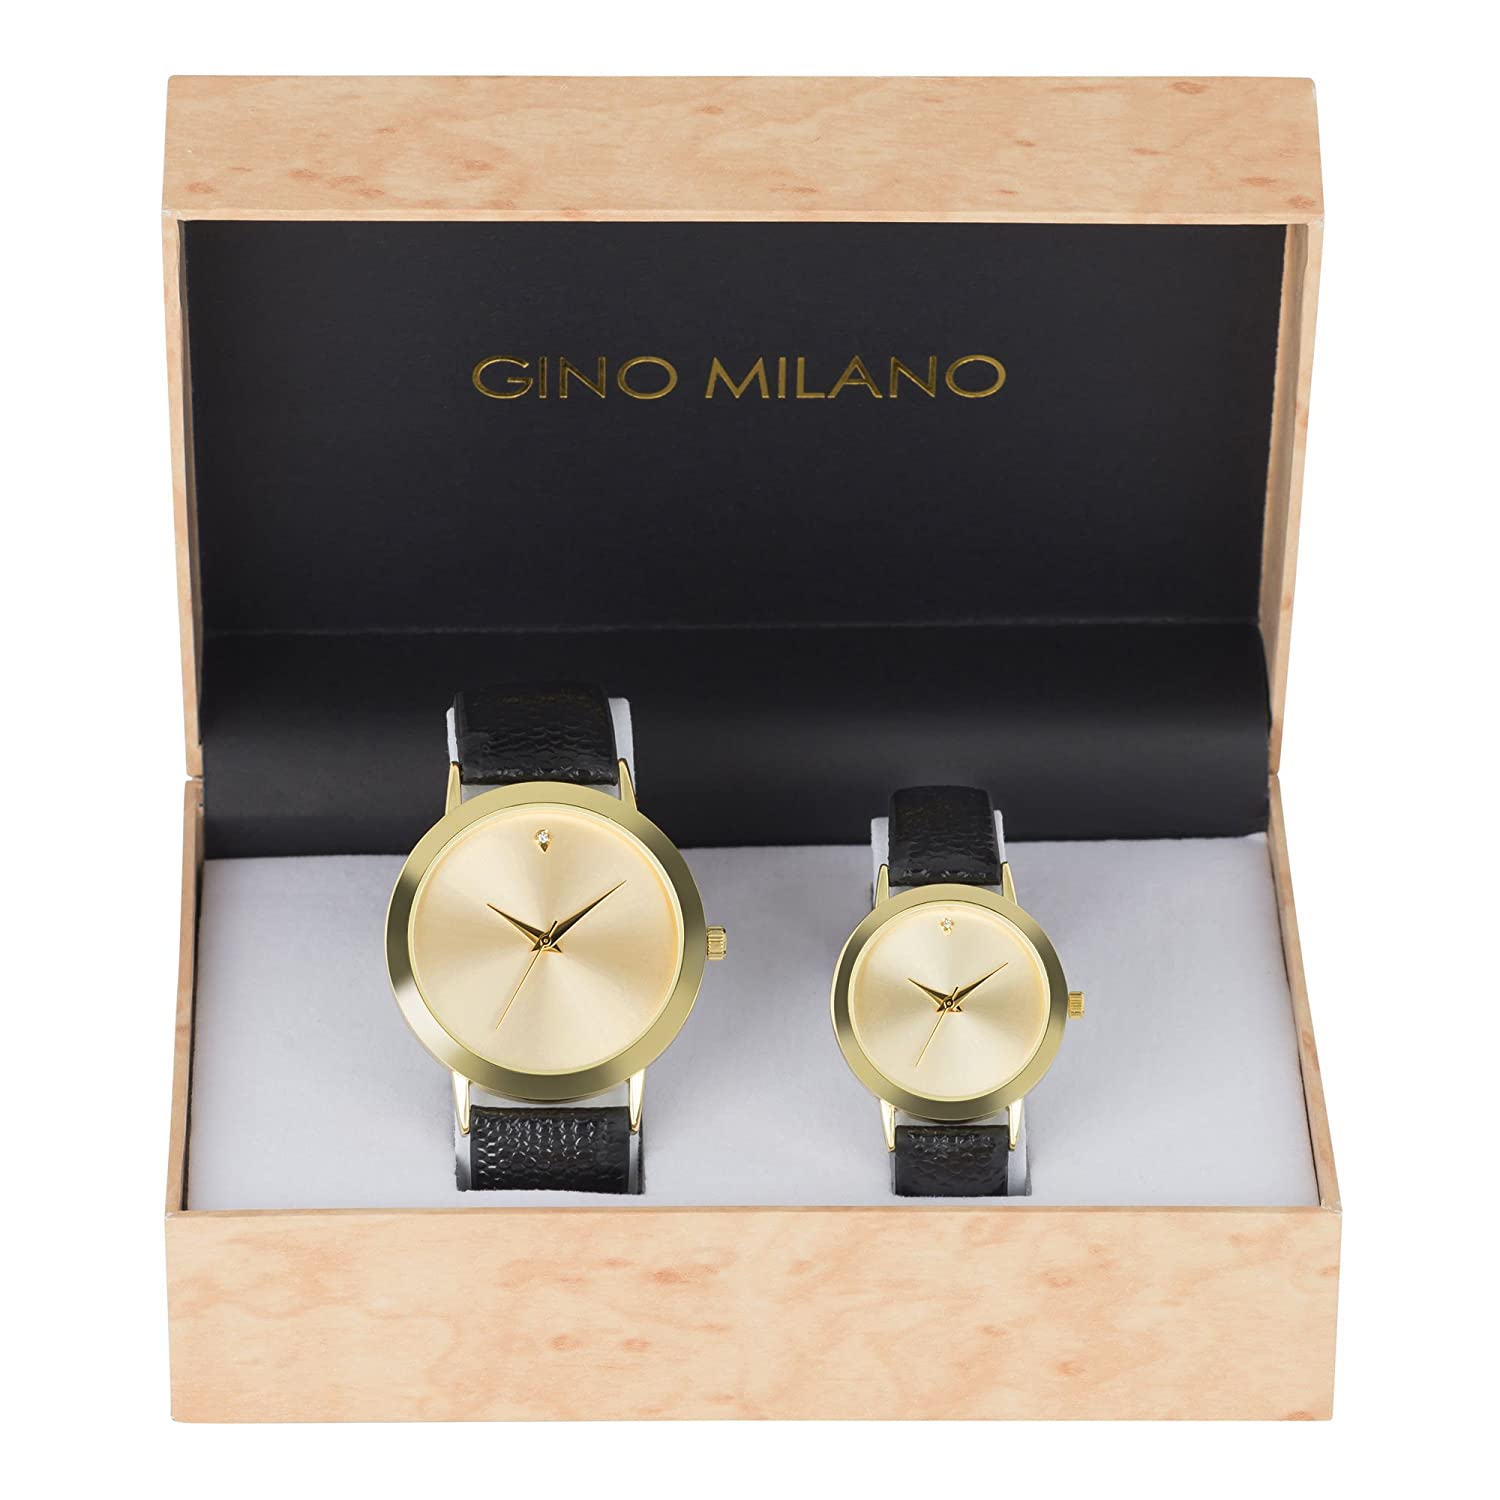 b2d1185b3483 Amazon.com  His and Her Watch Sets - 2 Piece Matching Gift Set by Gino  Milano with Gift Box 4904  Watches